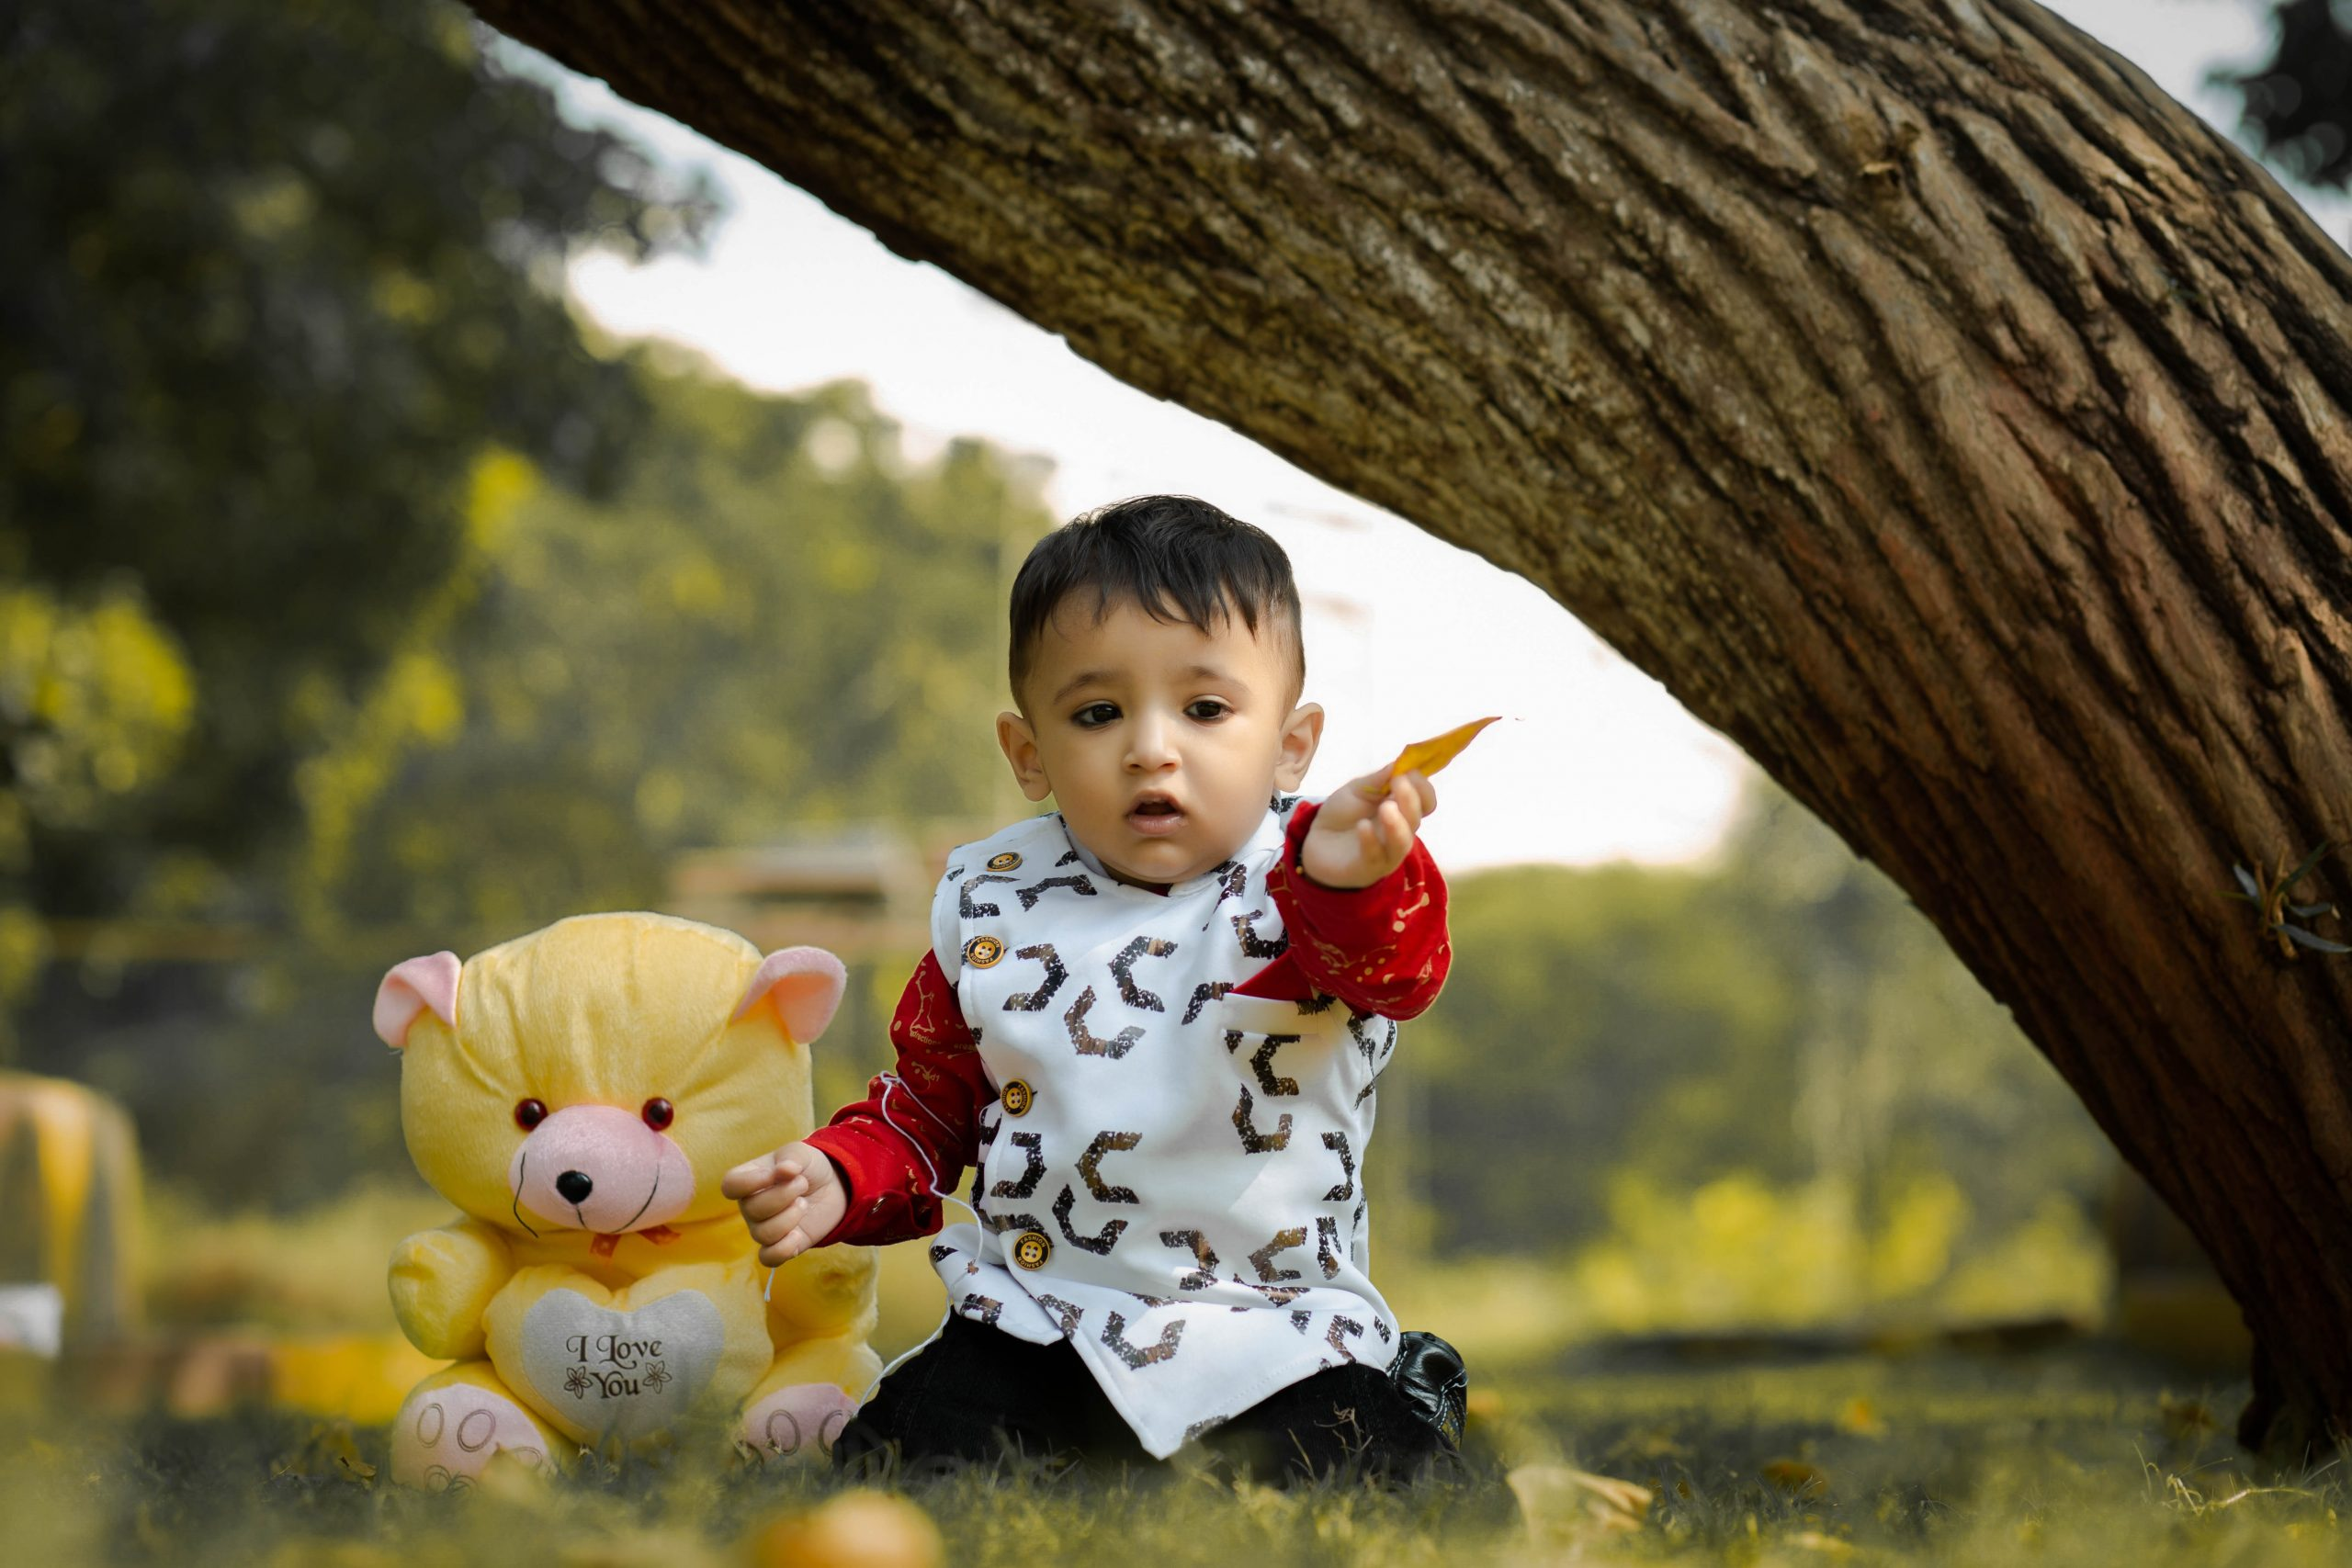 Kid with toy